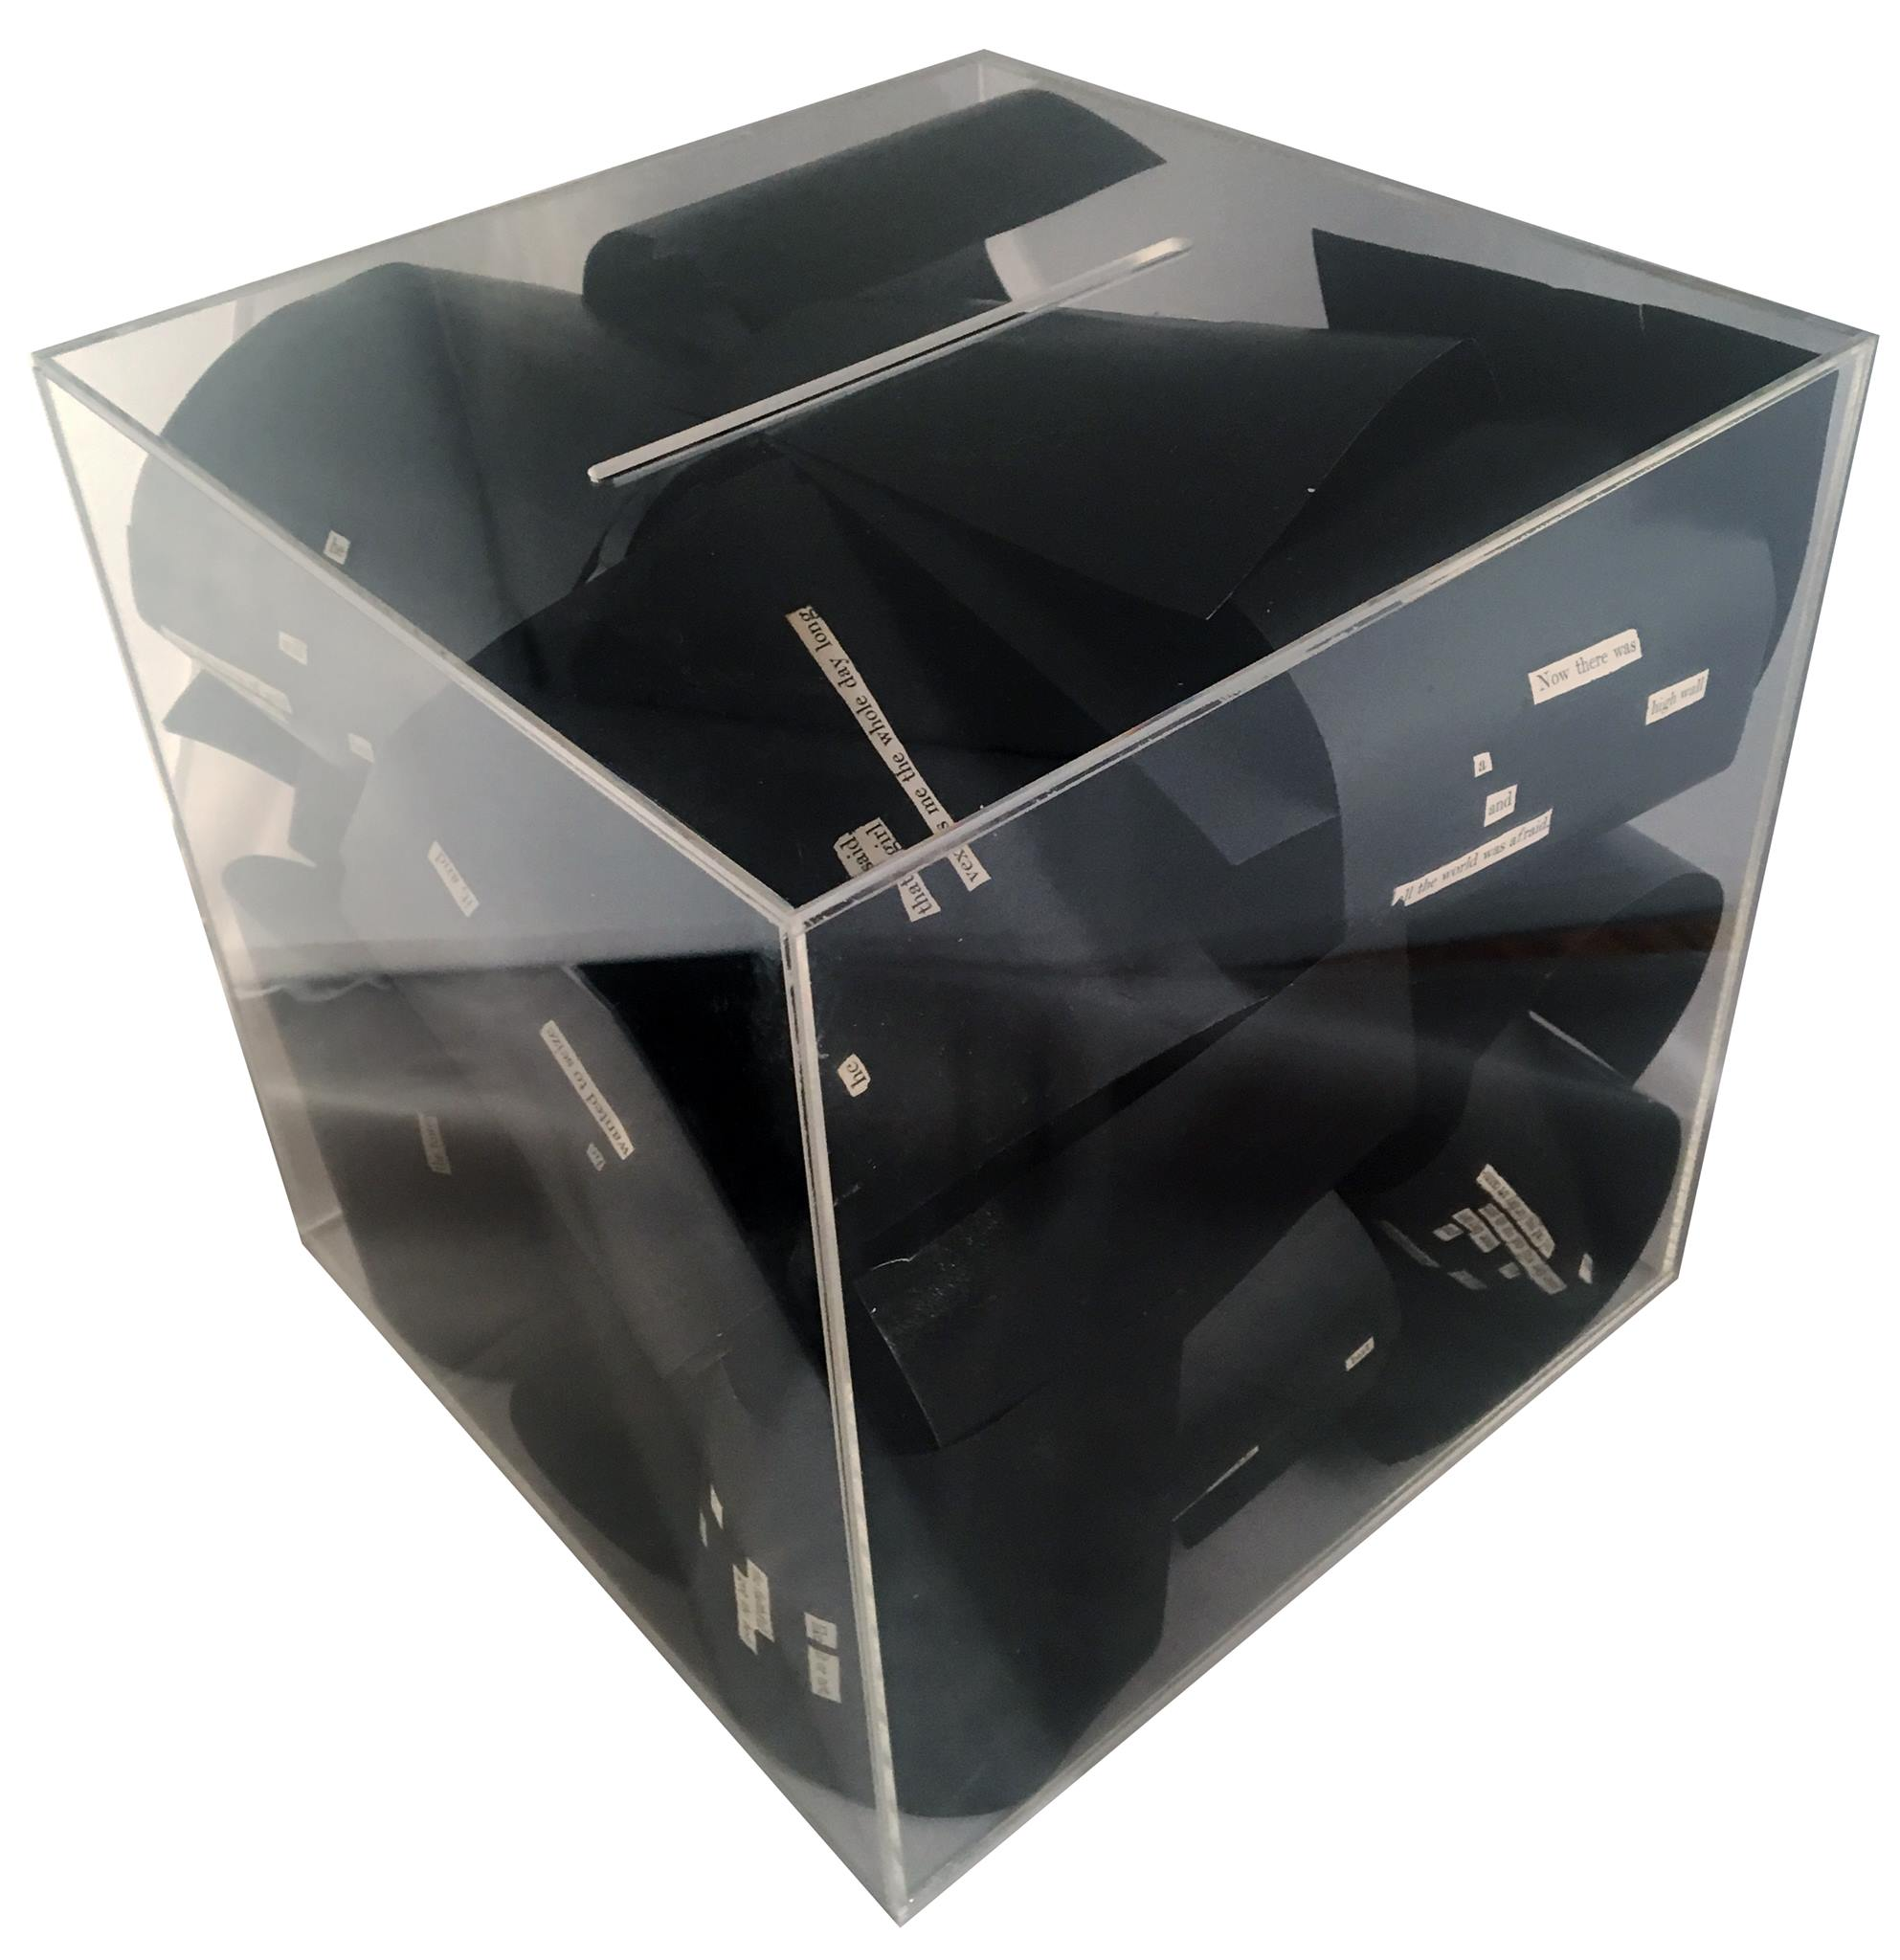 Acrylic box featuring blacked out pages of text.